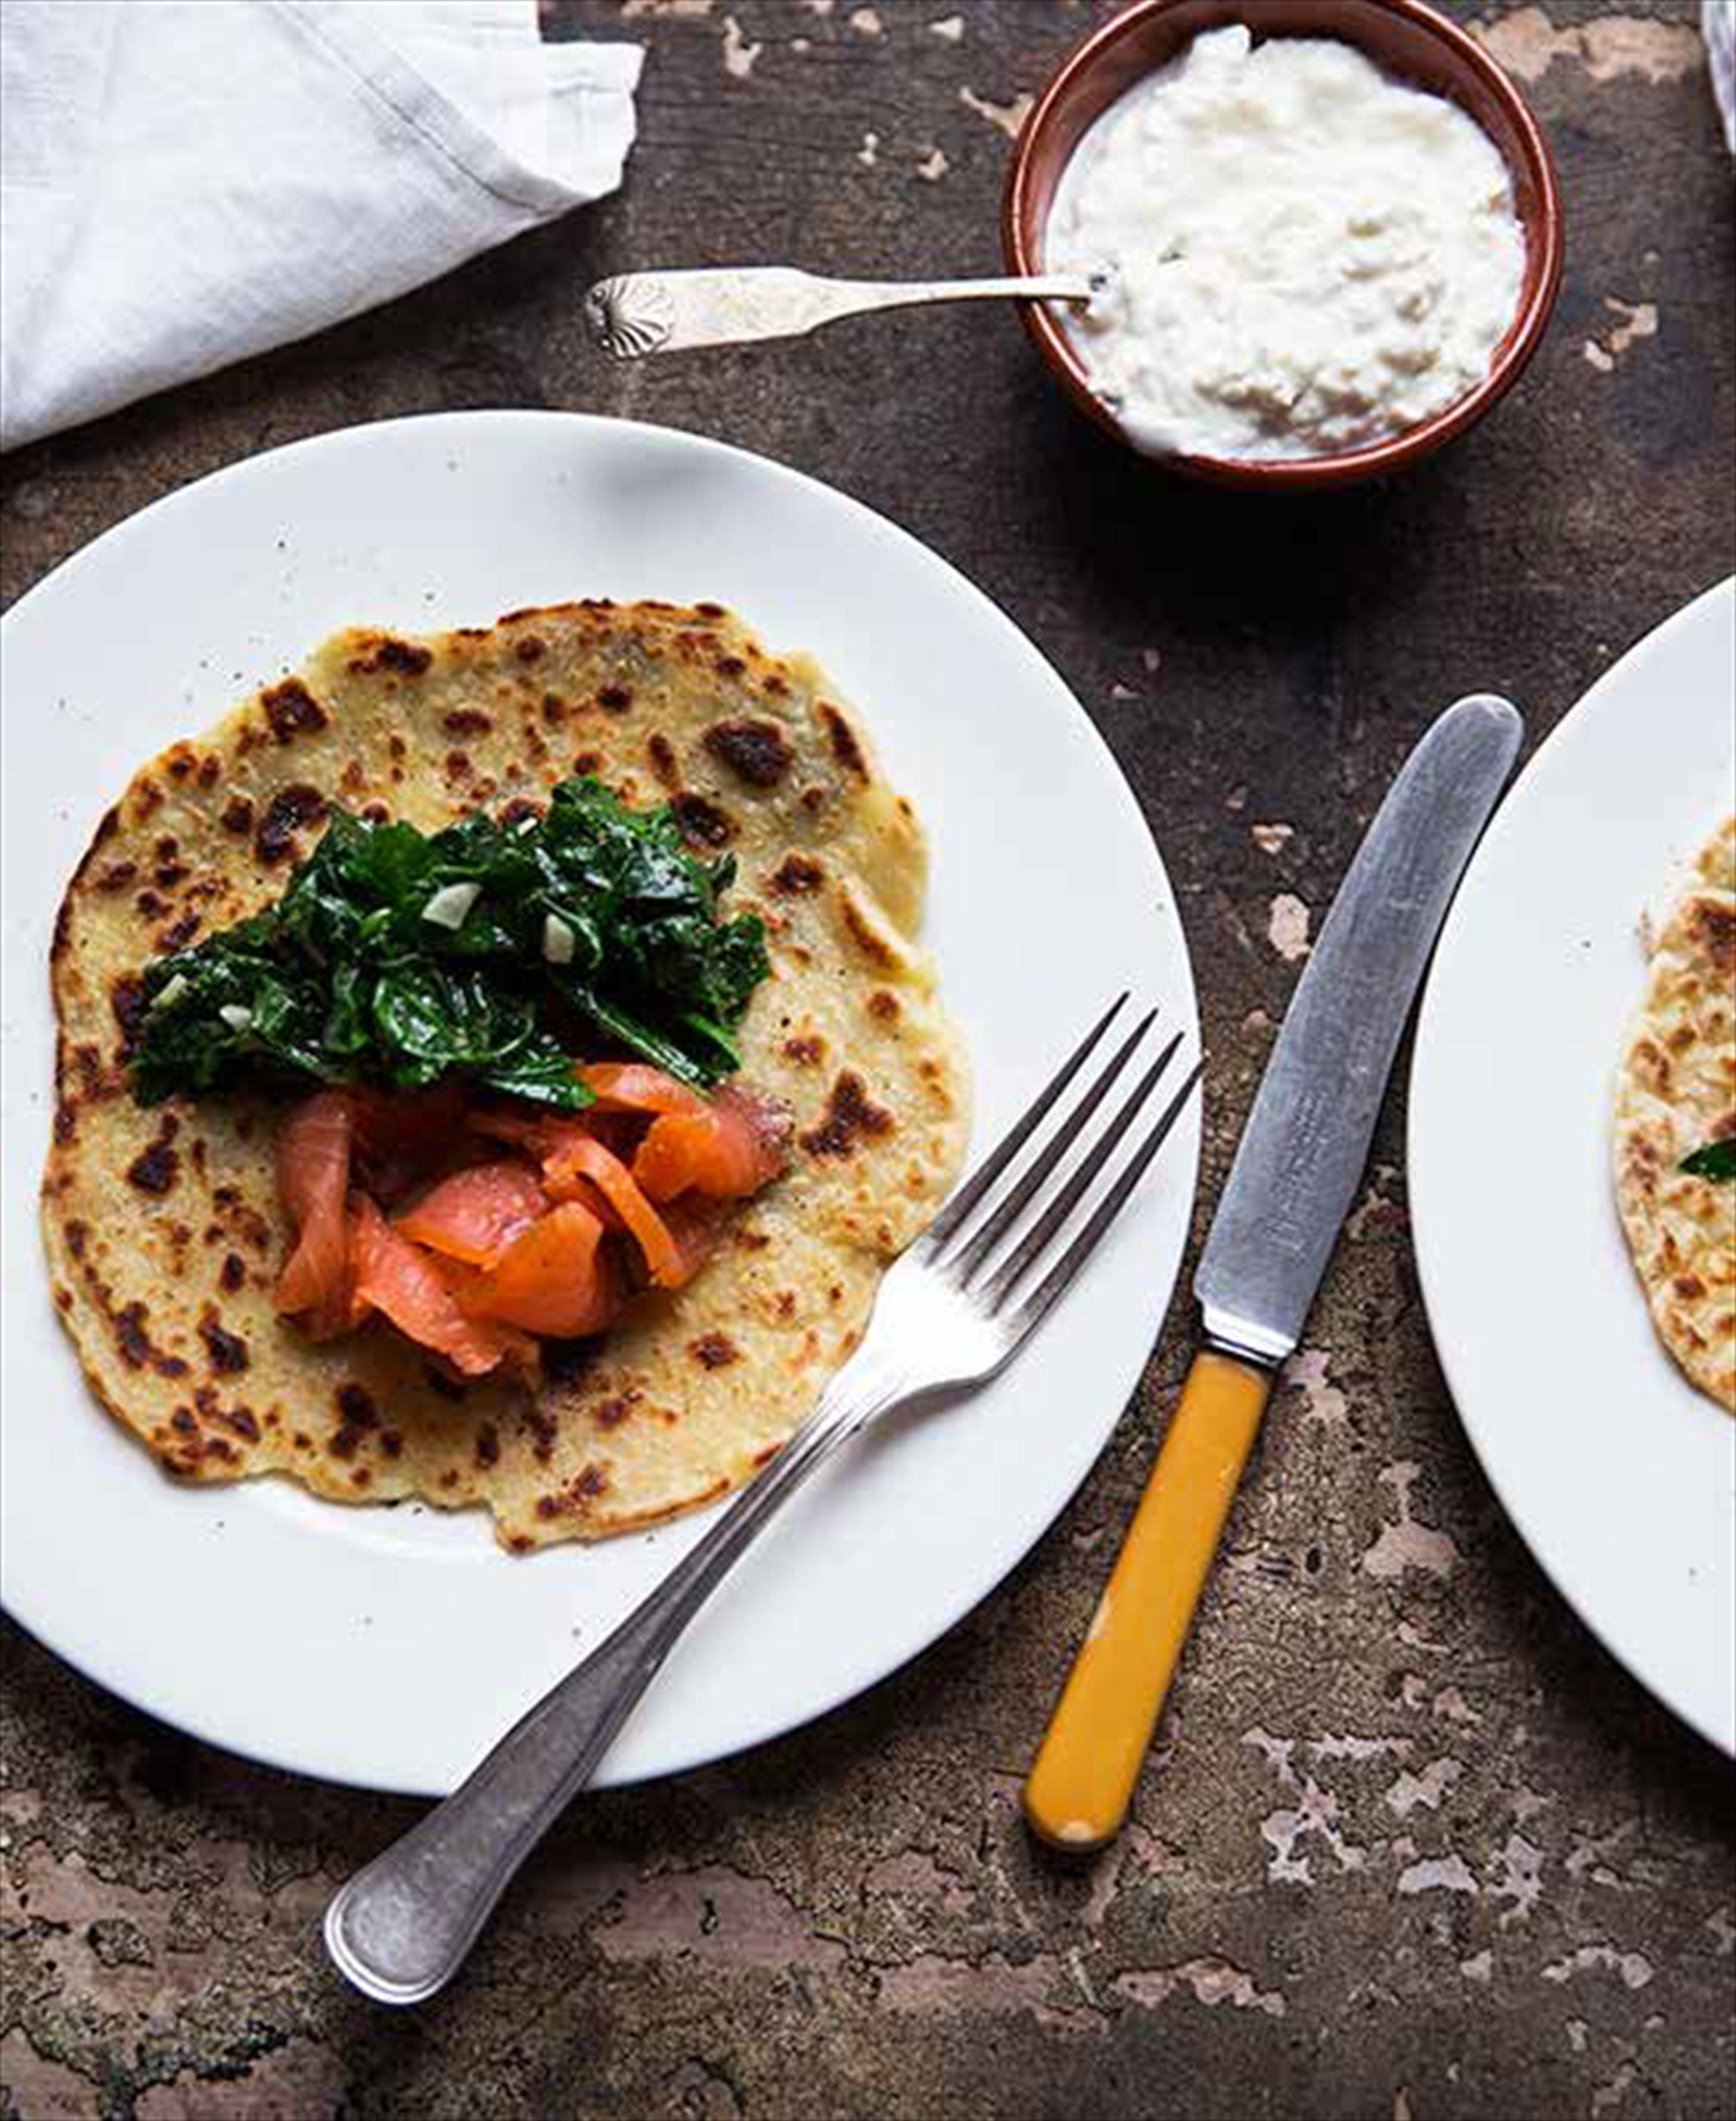 Norwegian potato pancakes with salmon and spinach